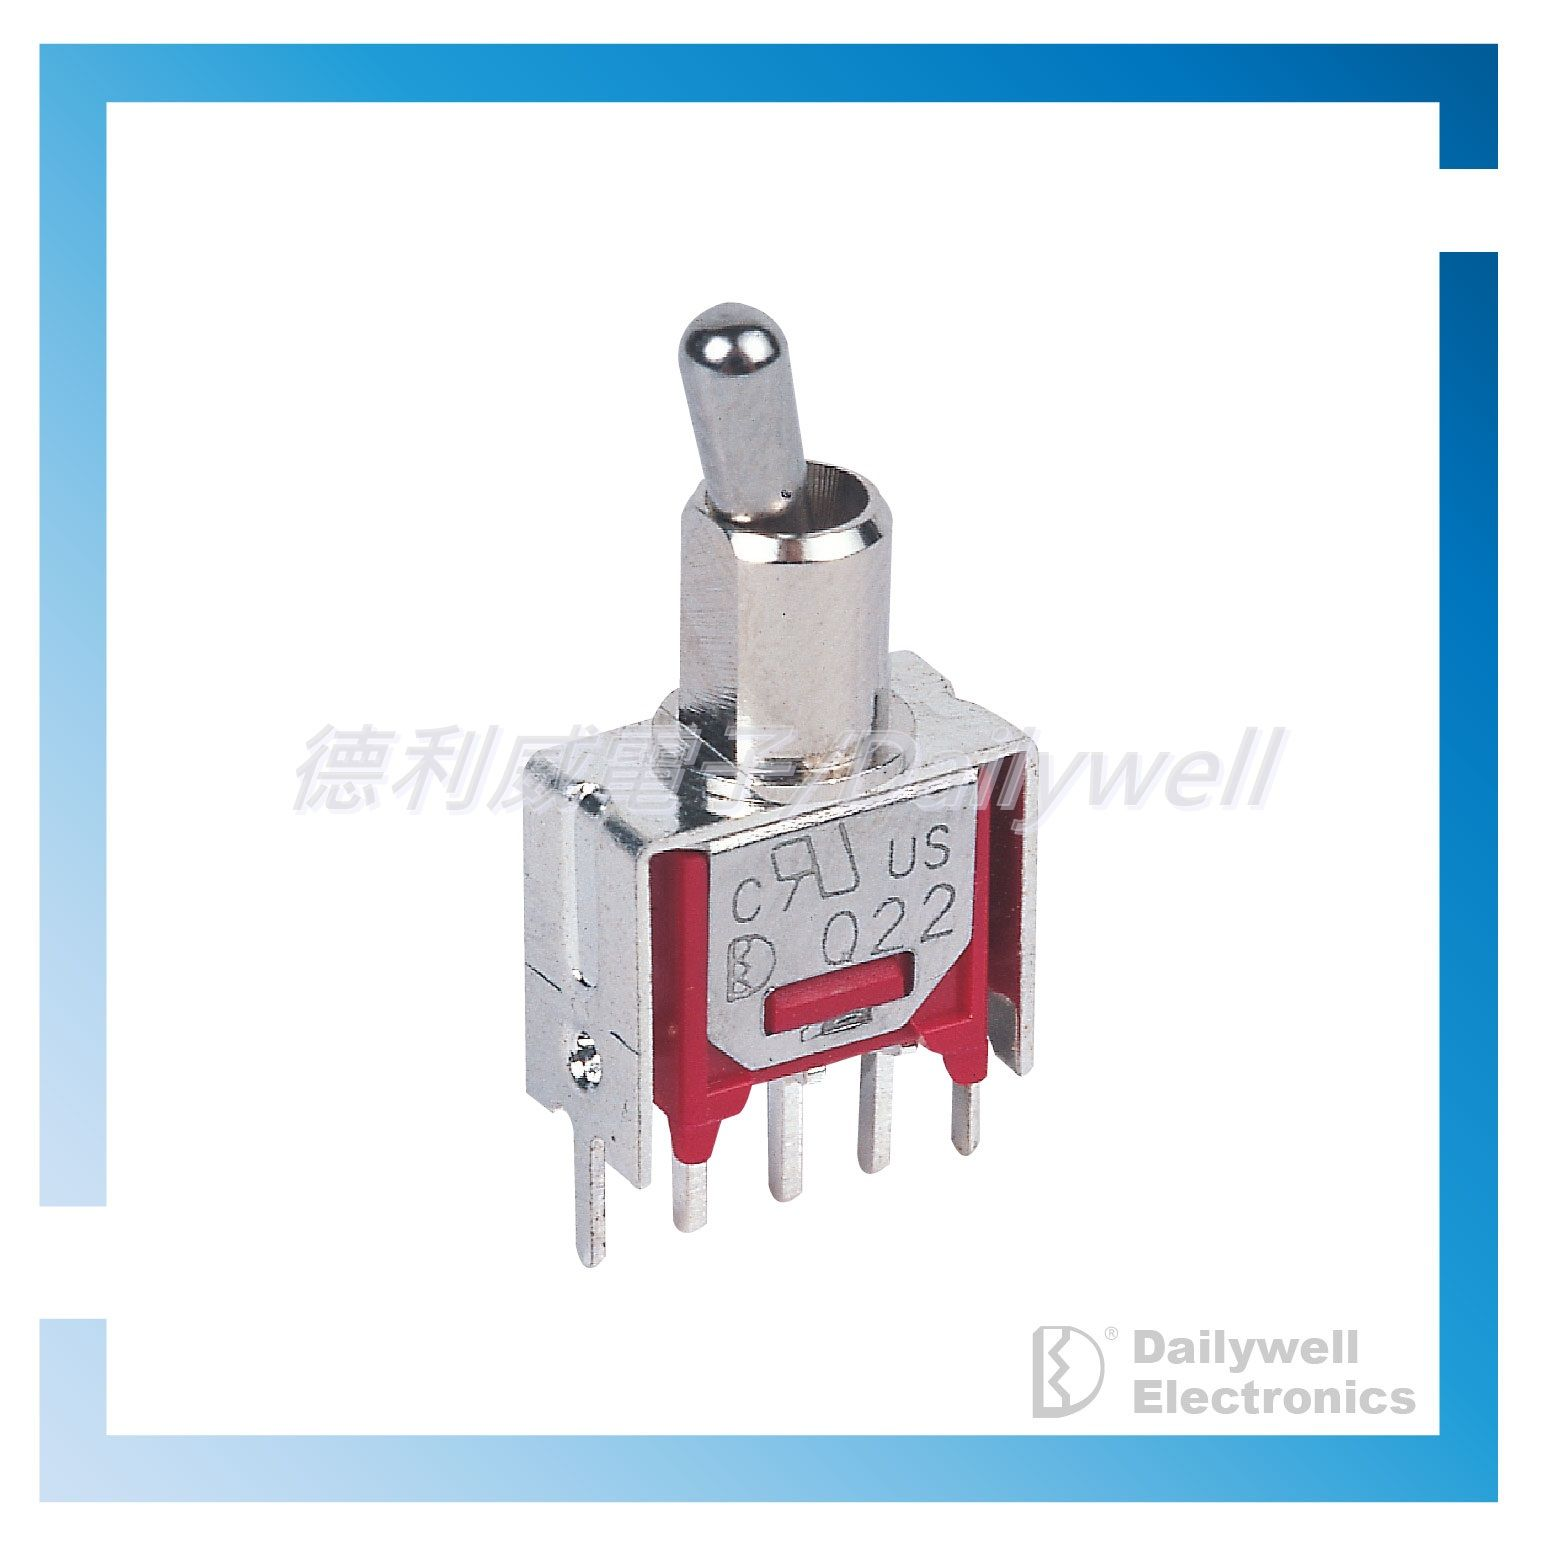 Sub Miniature Toggle Switches Switch Supplier Dailywell